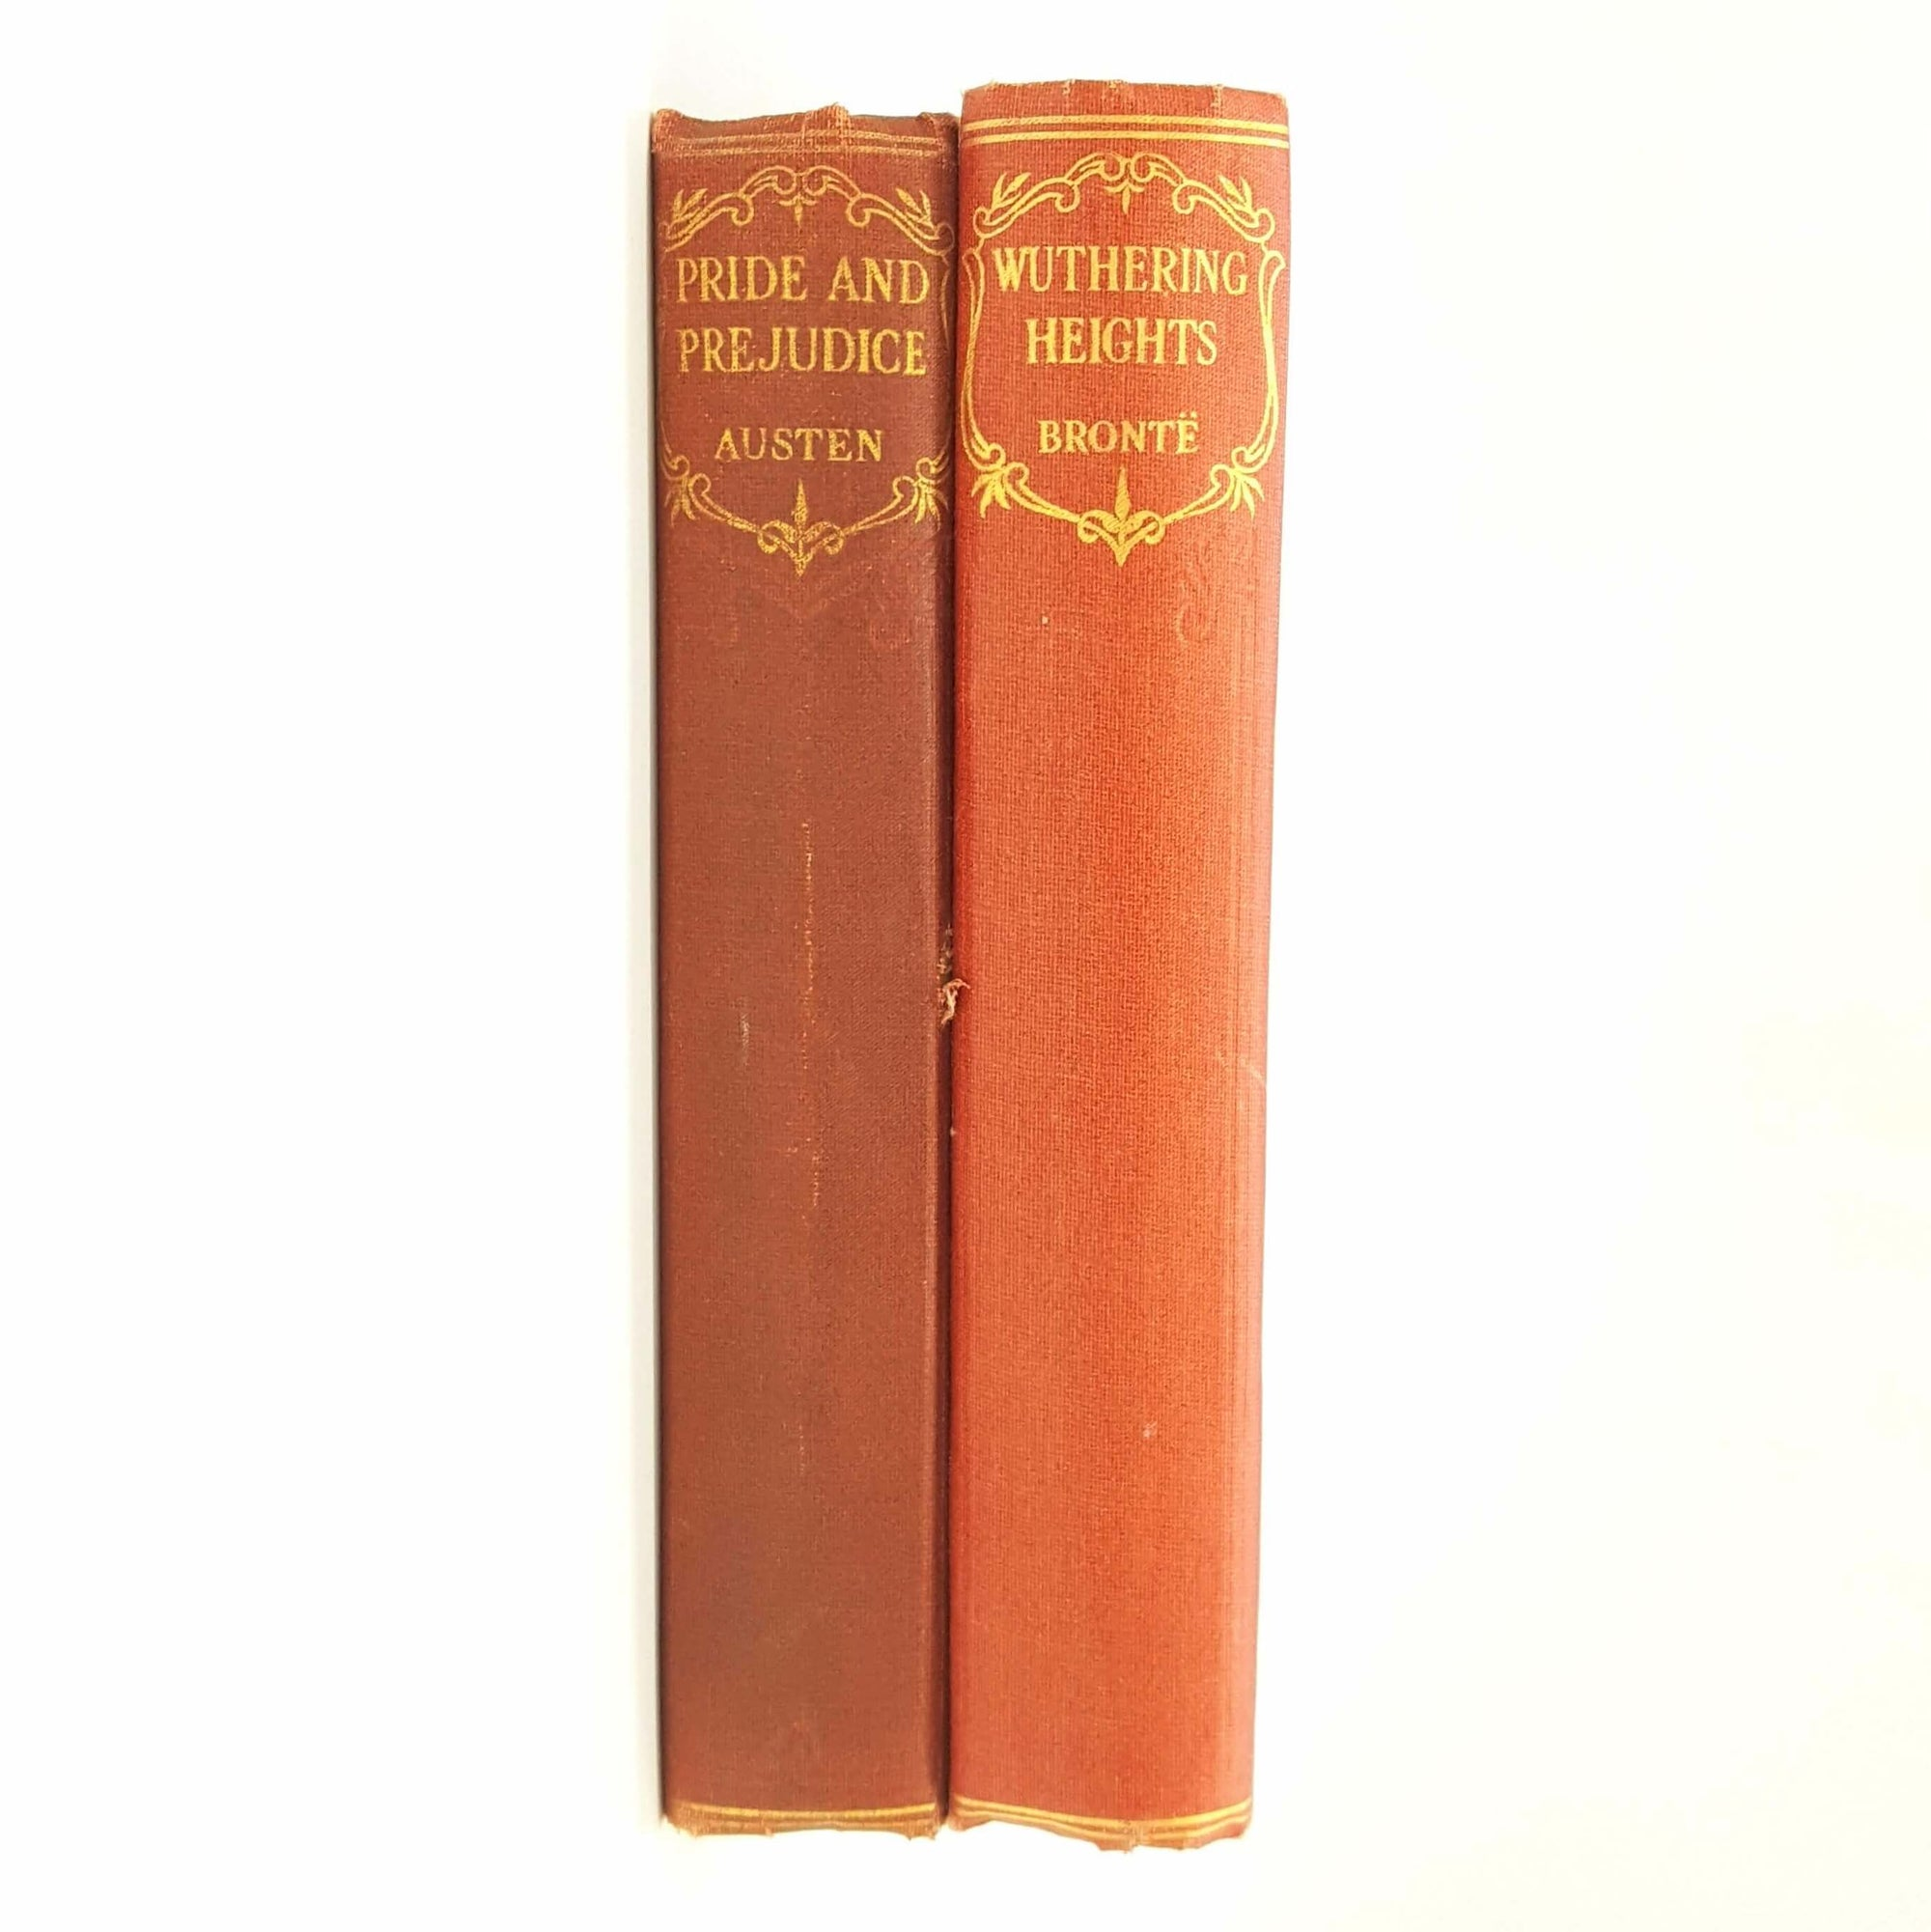 Classic Female Author Collection - Wuthering Heights and Pride and Prejudice 1930 Country House Library